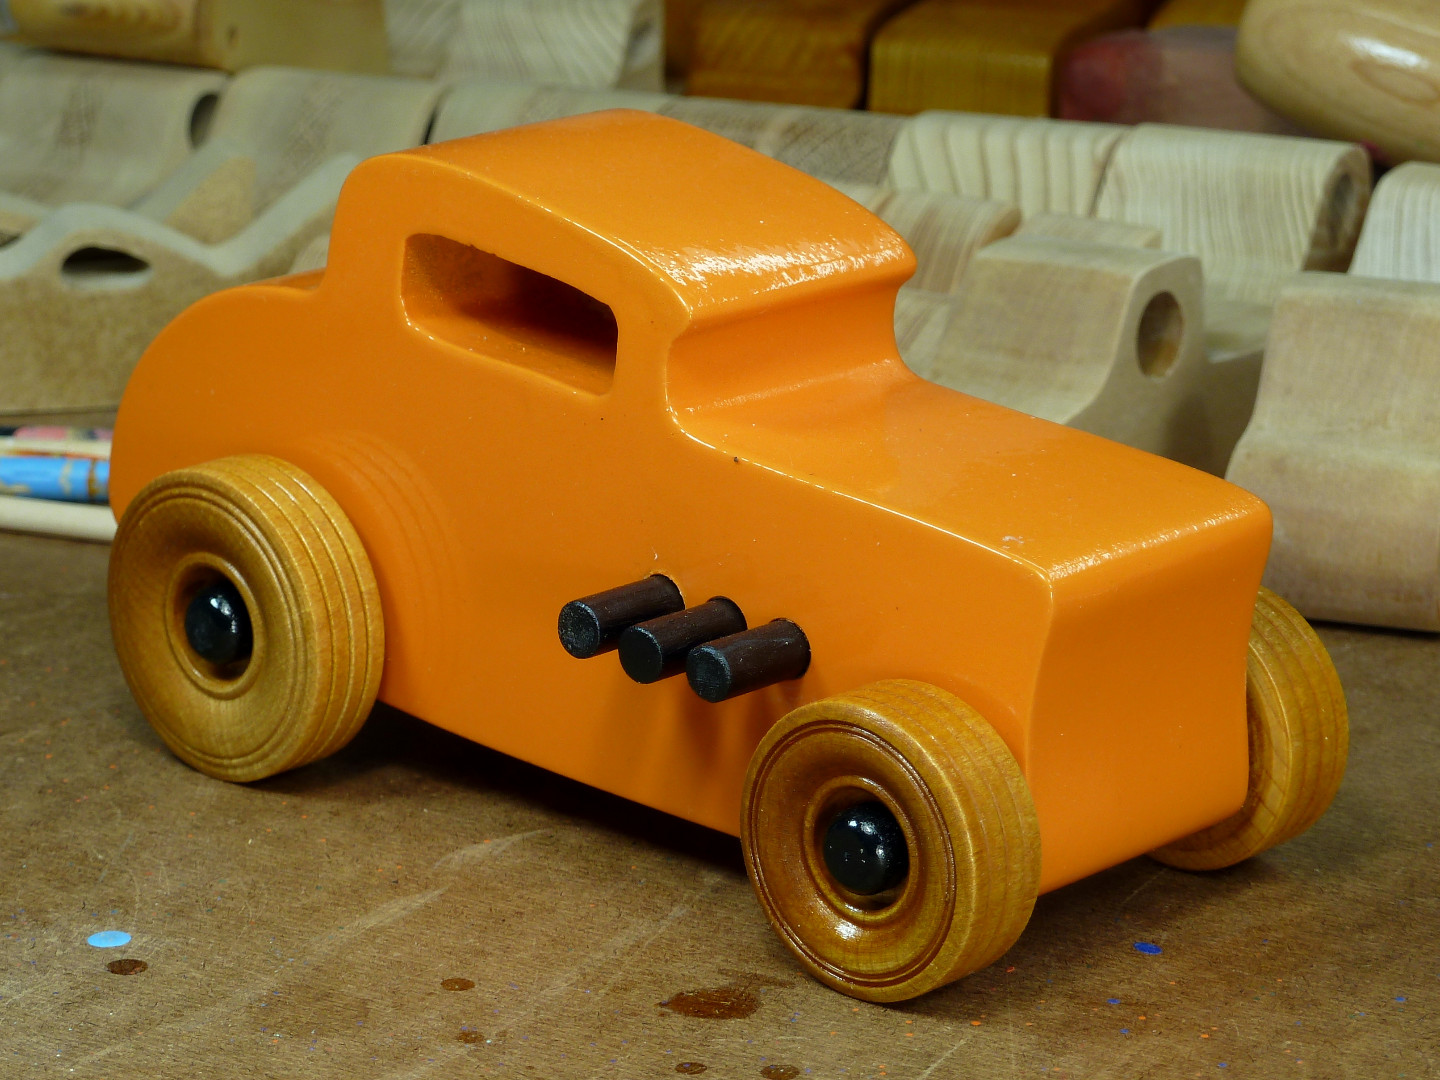 20170522-191904 Wooden Toy Car - Hot Rod Freaky Ford - 32 Deuce Coupe - MDF - Orange - Amber Shellac - Black.jpg